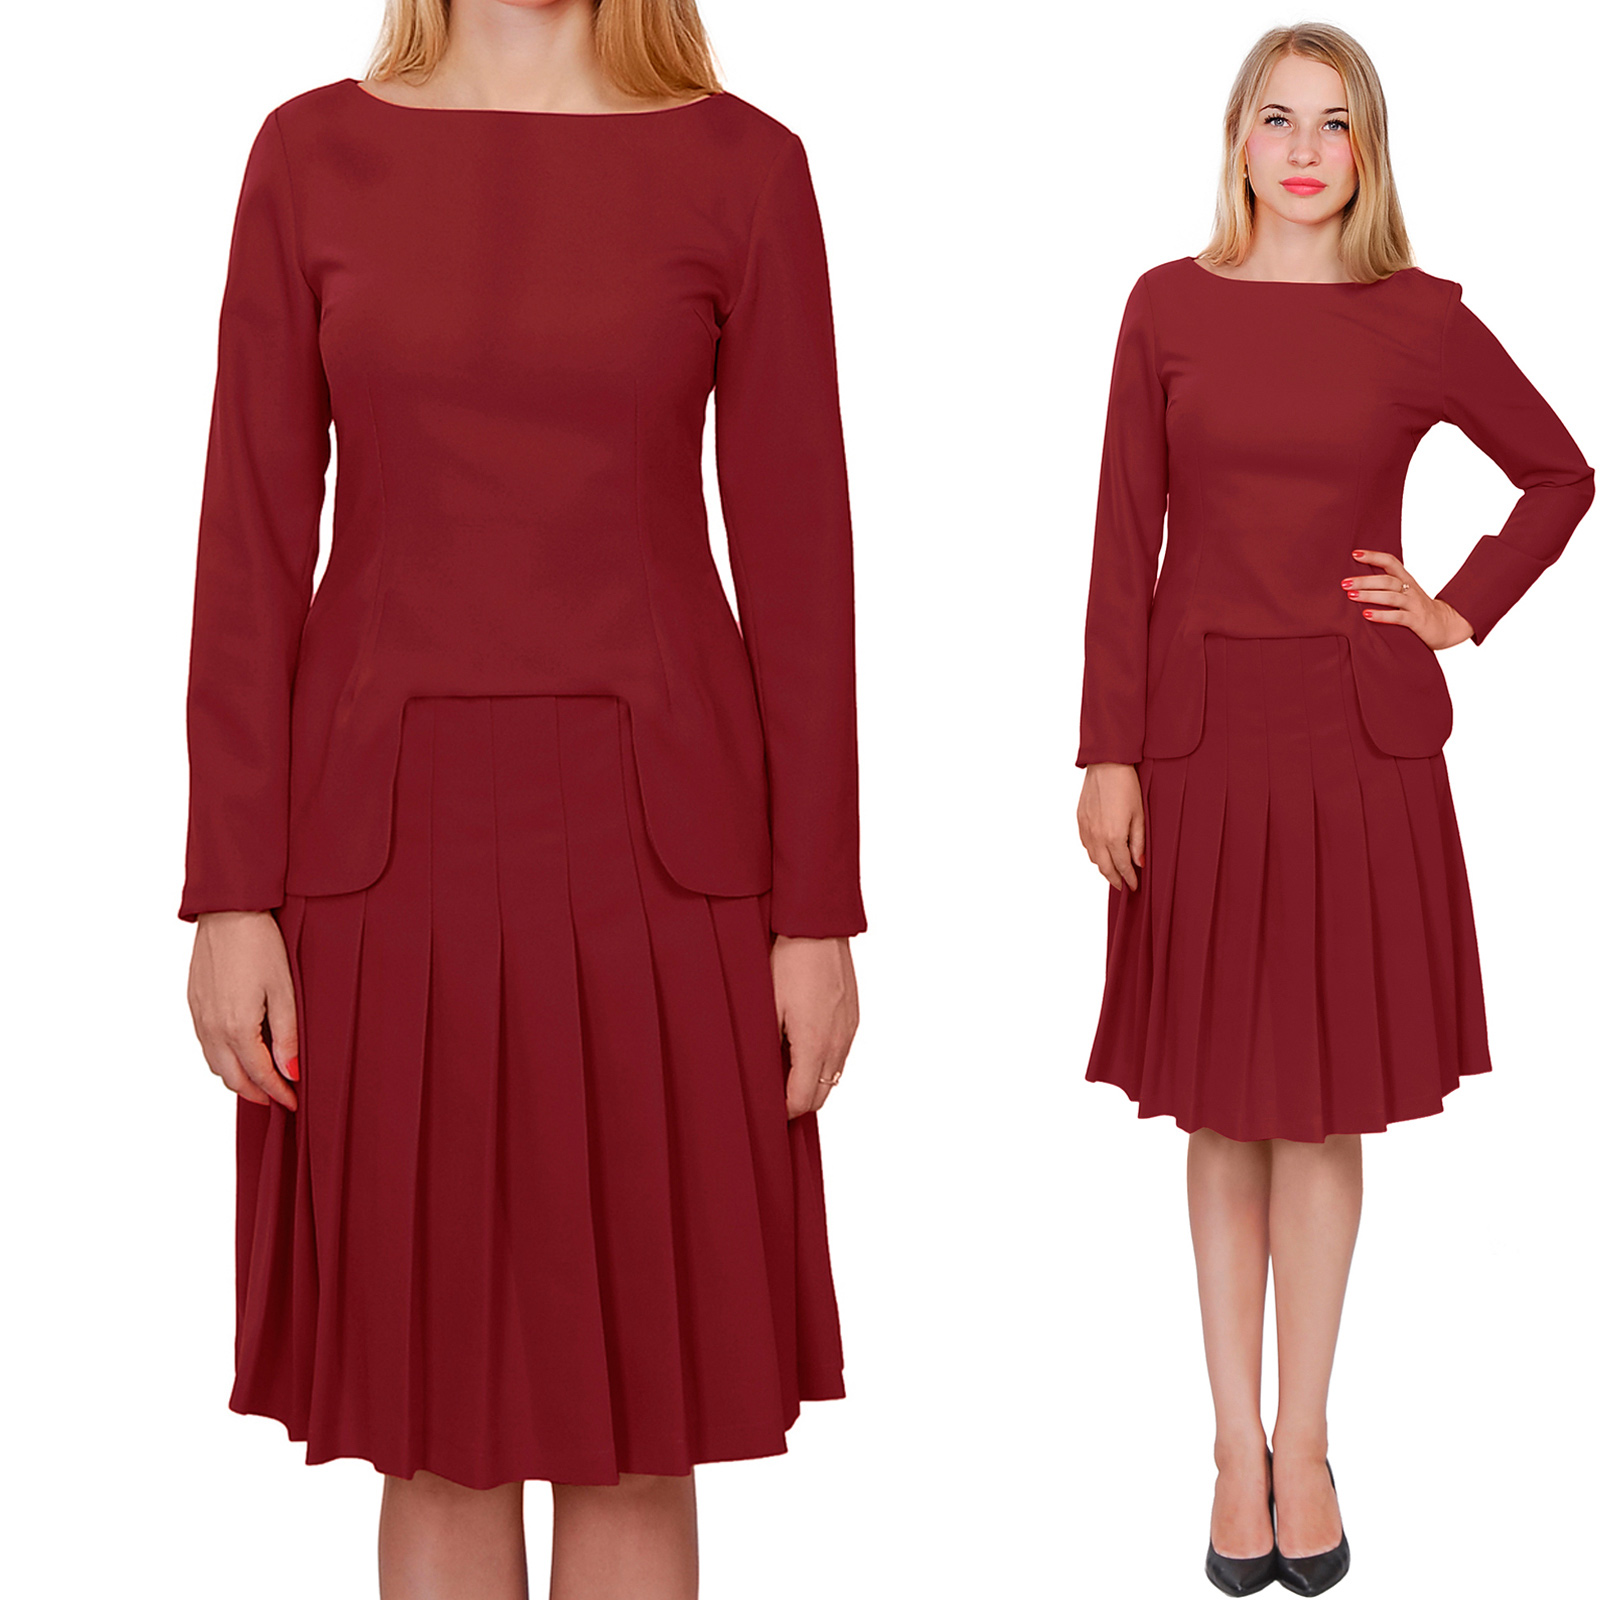 Image Is Loading Burgundy Marycrafts Womens Church Office Business Skirt Suits